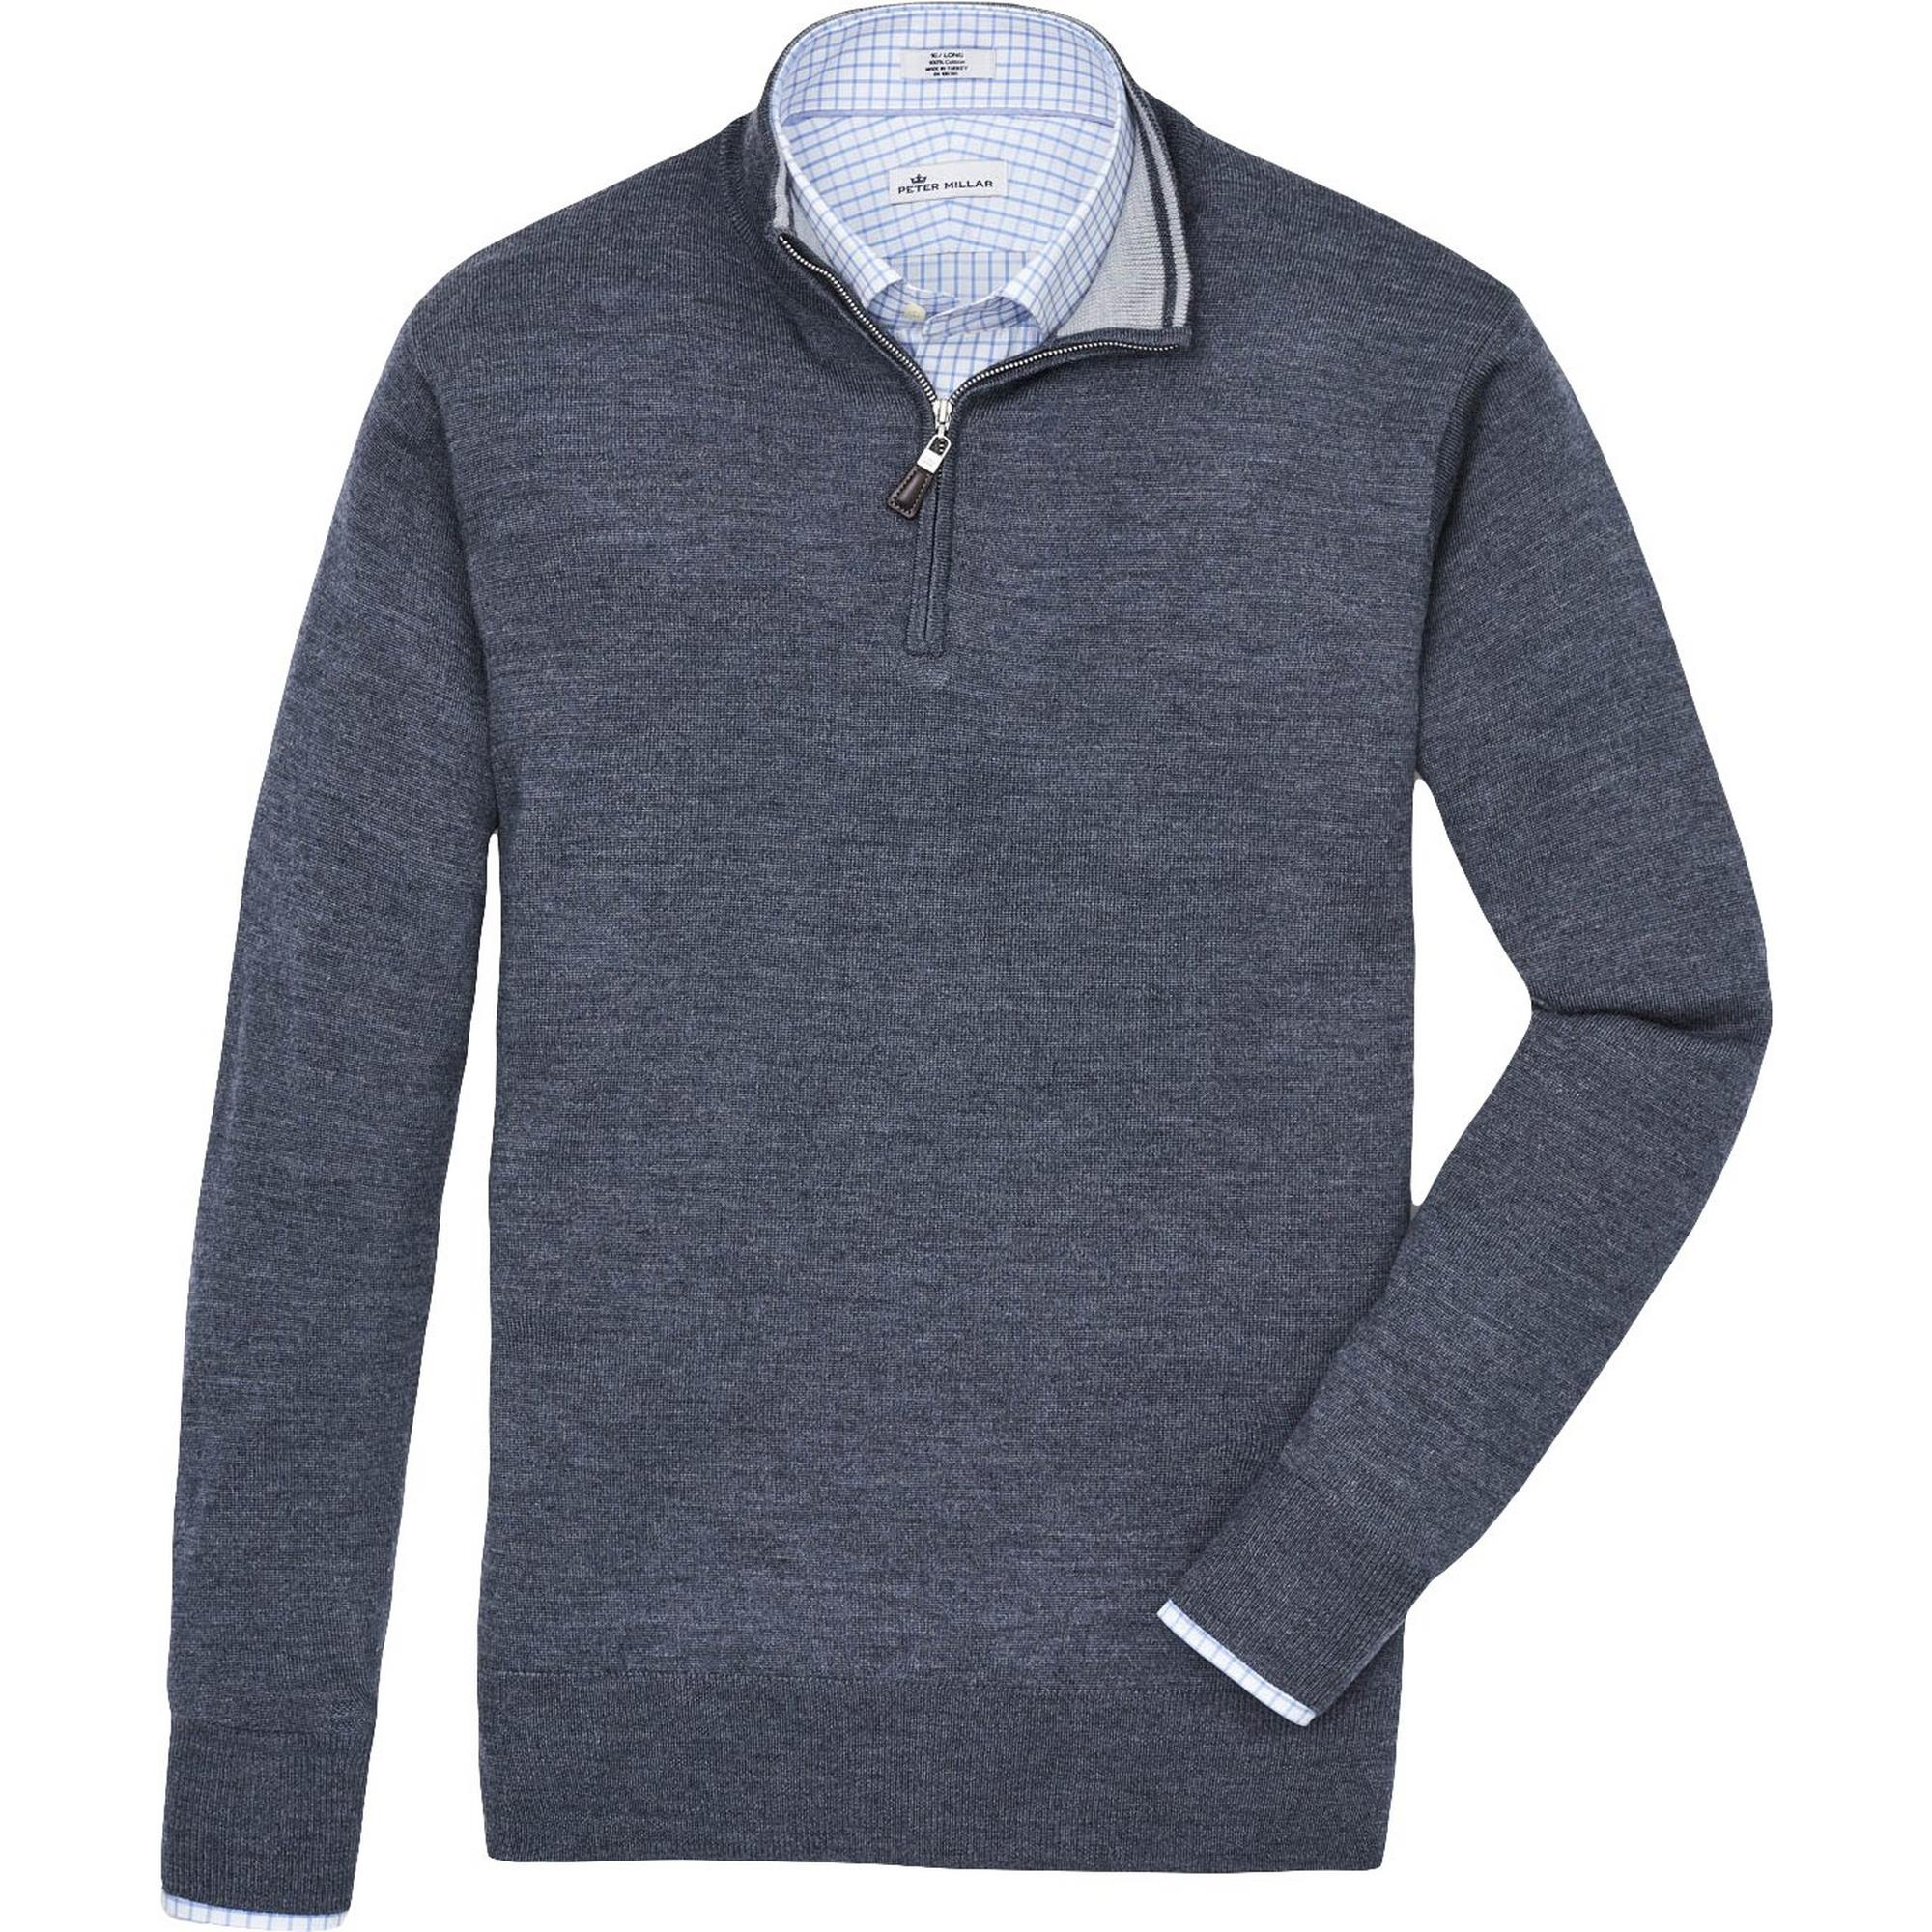 Men's Crown Soft 1/4 Zip Sweater